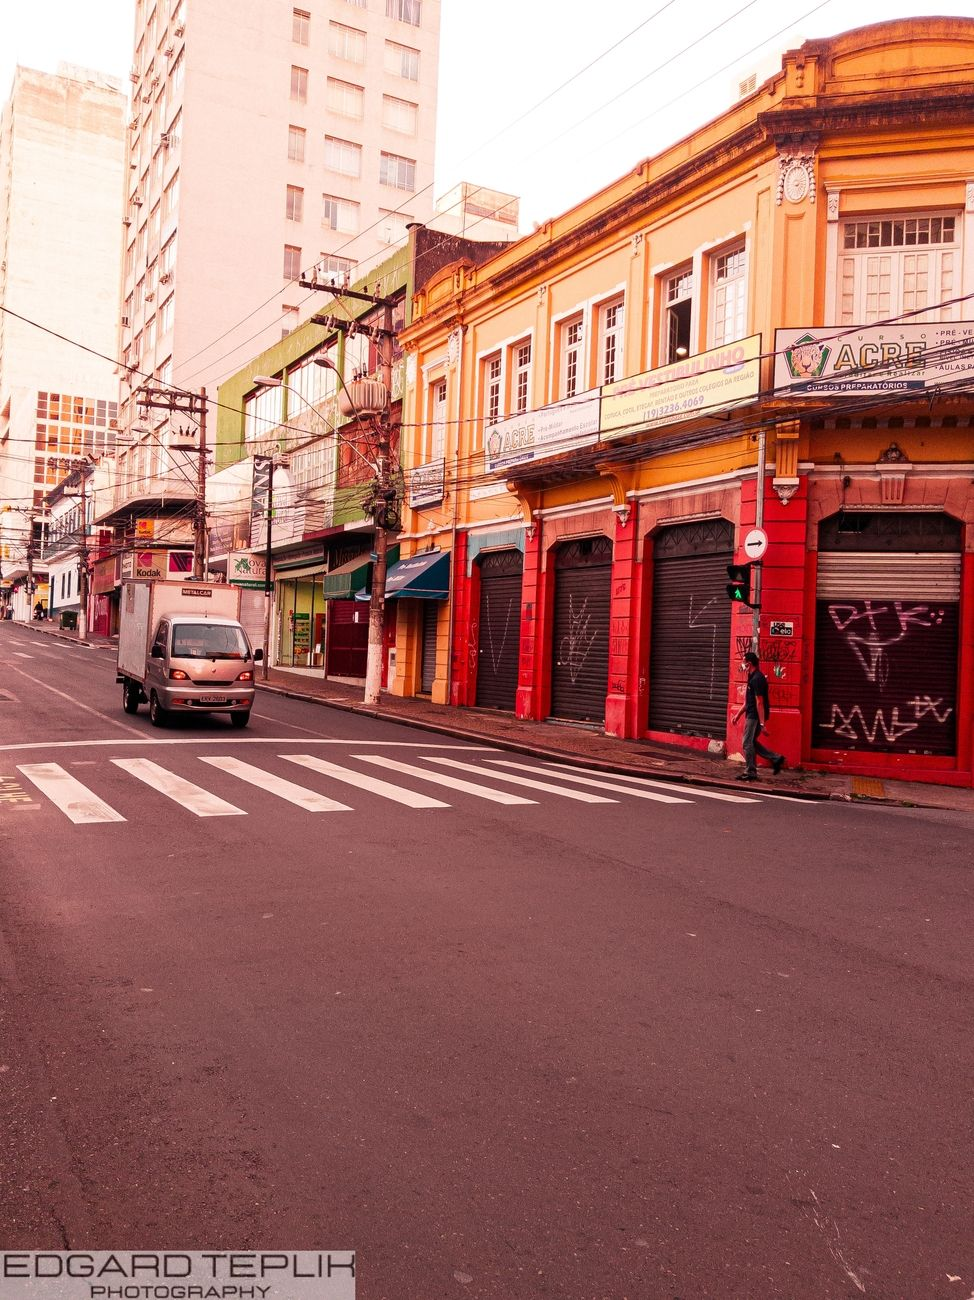 On this traditional street in Campinas we have the highlight of this old house, red and yellow, in a commercial spot